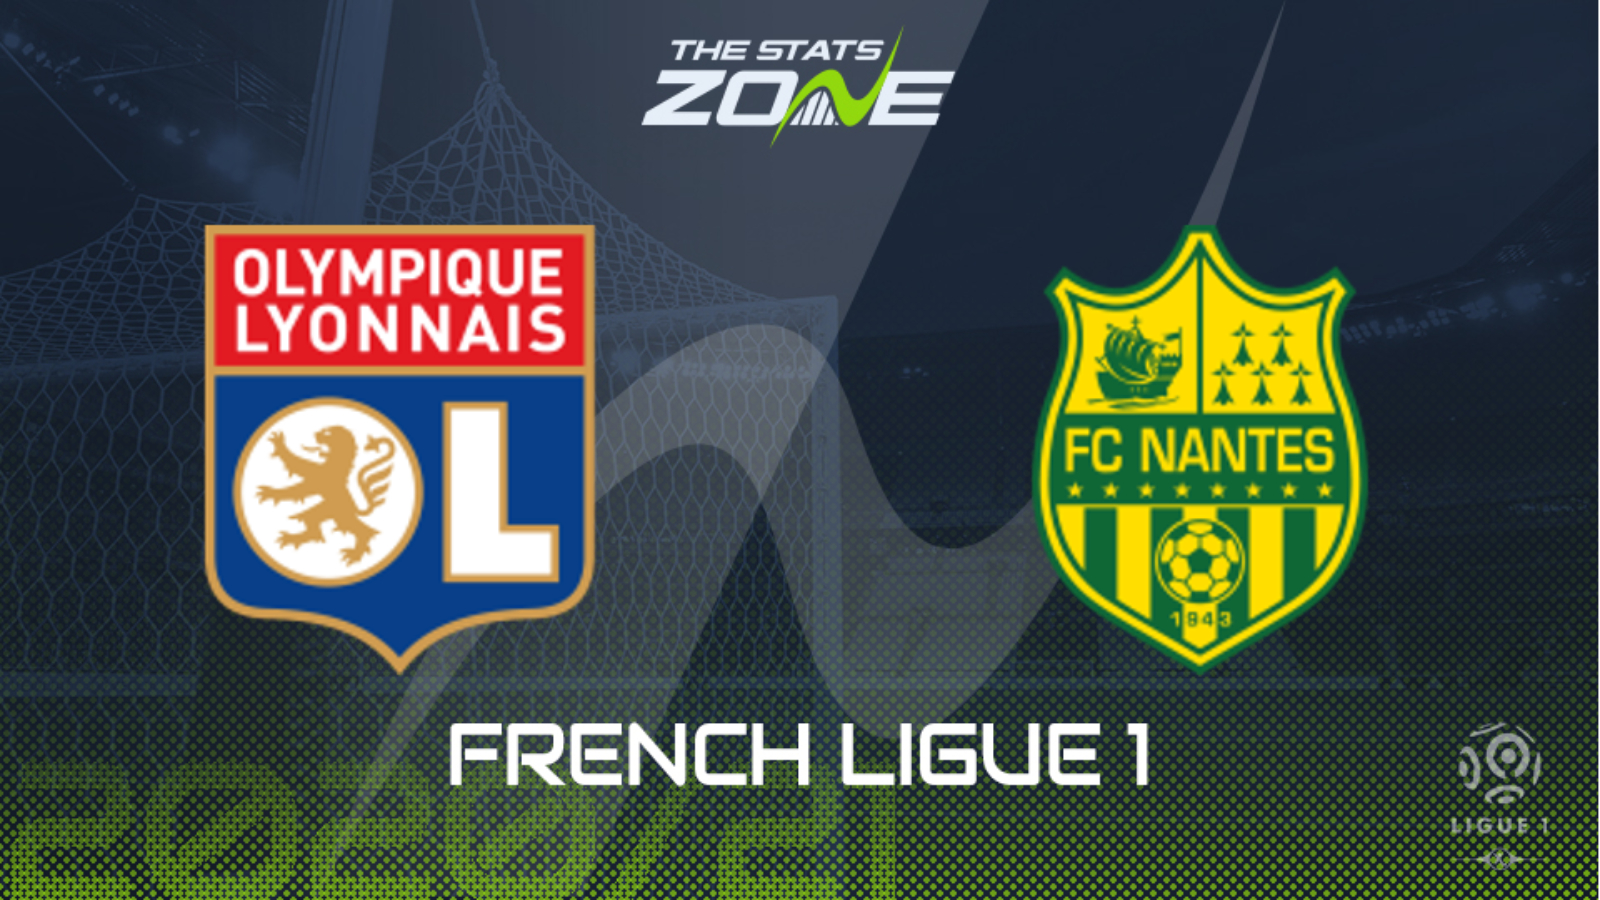 Nantes vs lyon betting free nfl betting lines